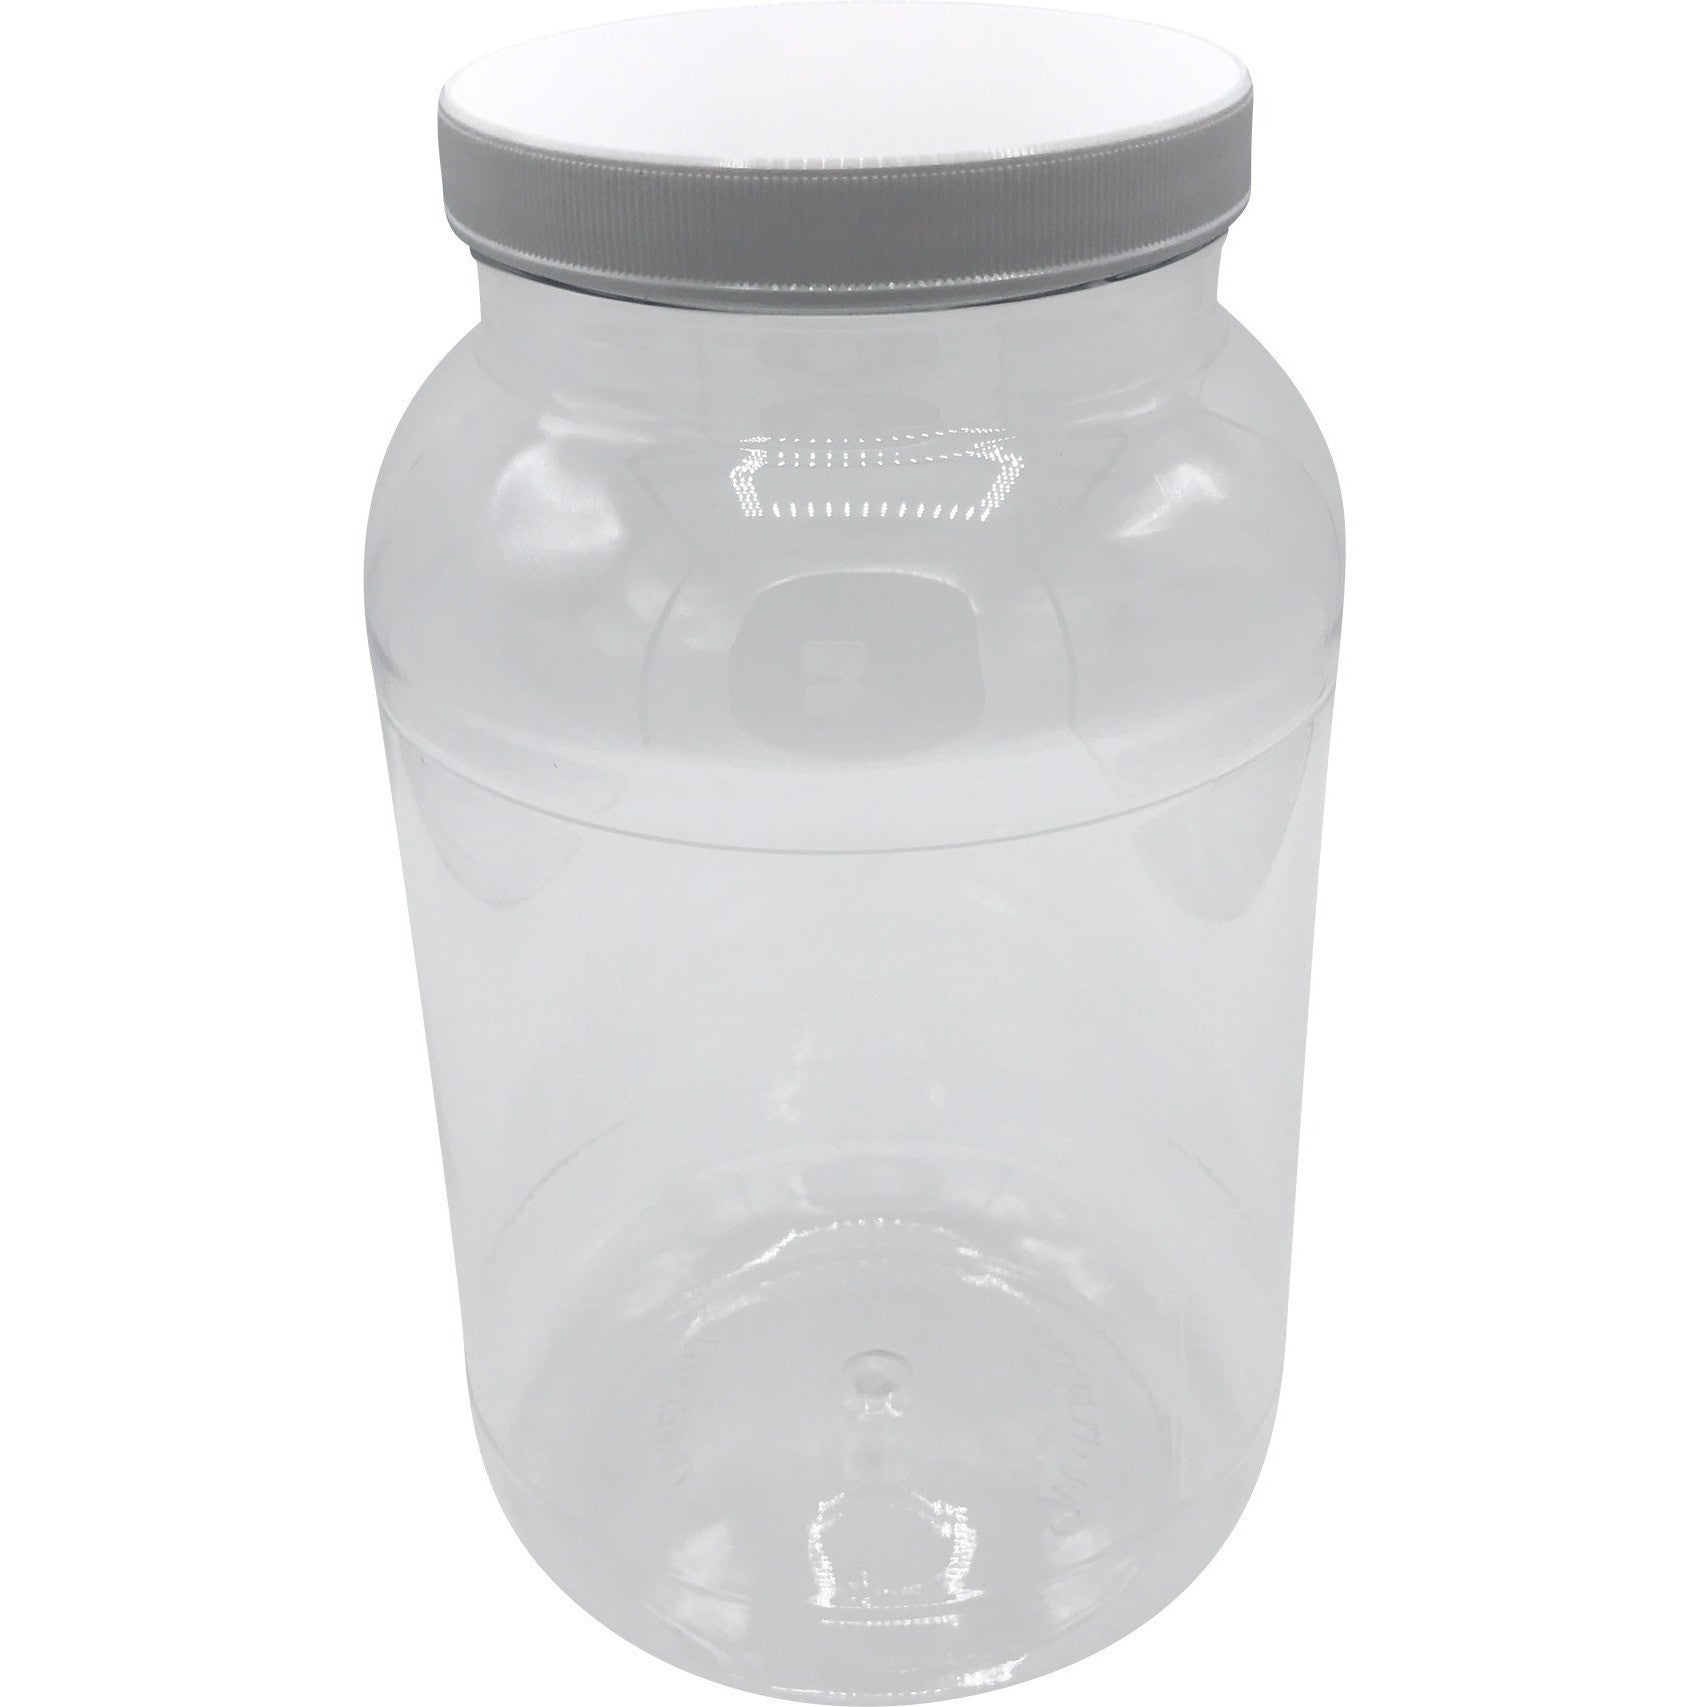 Gallon Mixing Jar with Cap - IcySkyy